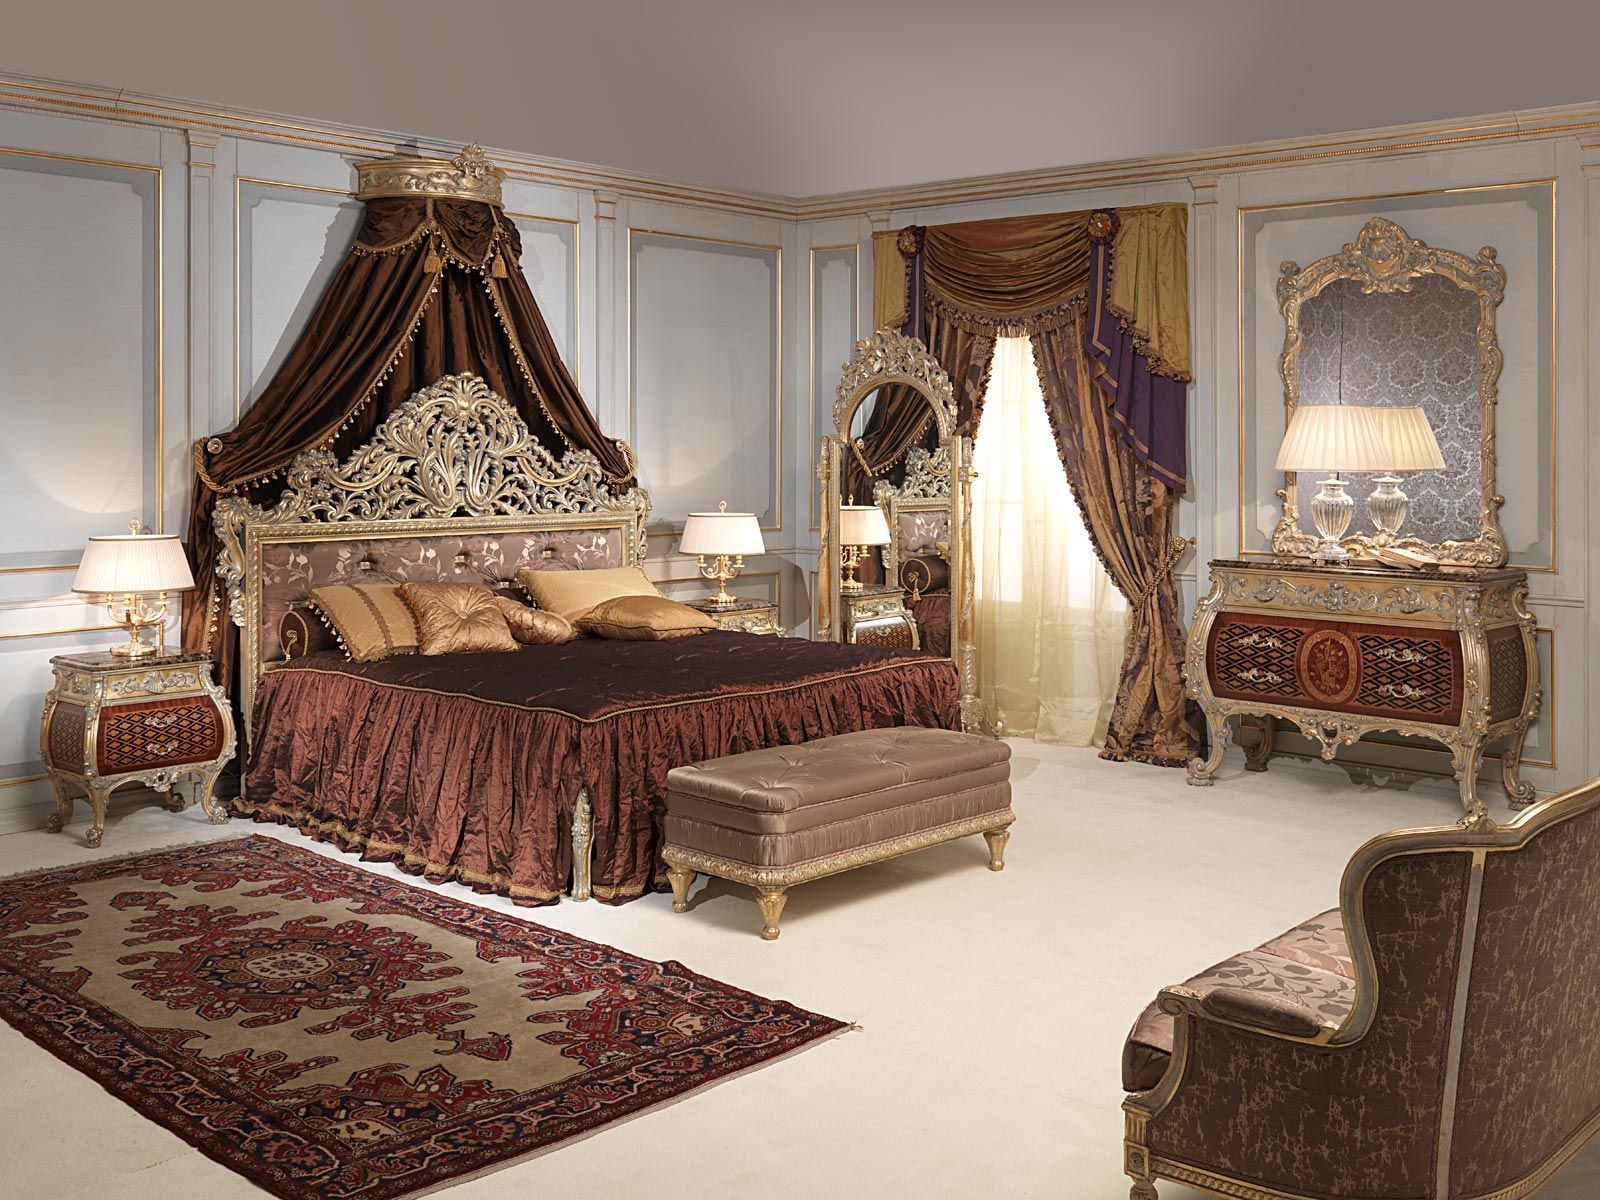 Brilliant Luxury Bedroom Setting With Velvet Rug Bedding And Sofa Unemploymentrelief Wooden Chair Designs For Living Room Unemploymentrelieforg